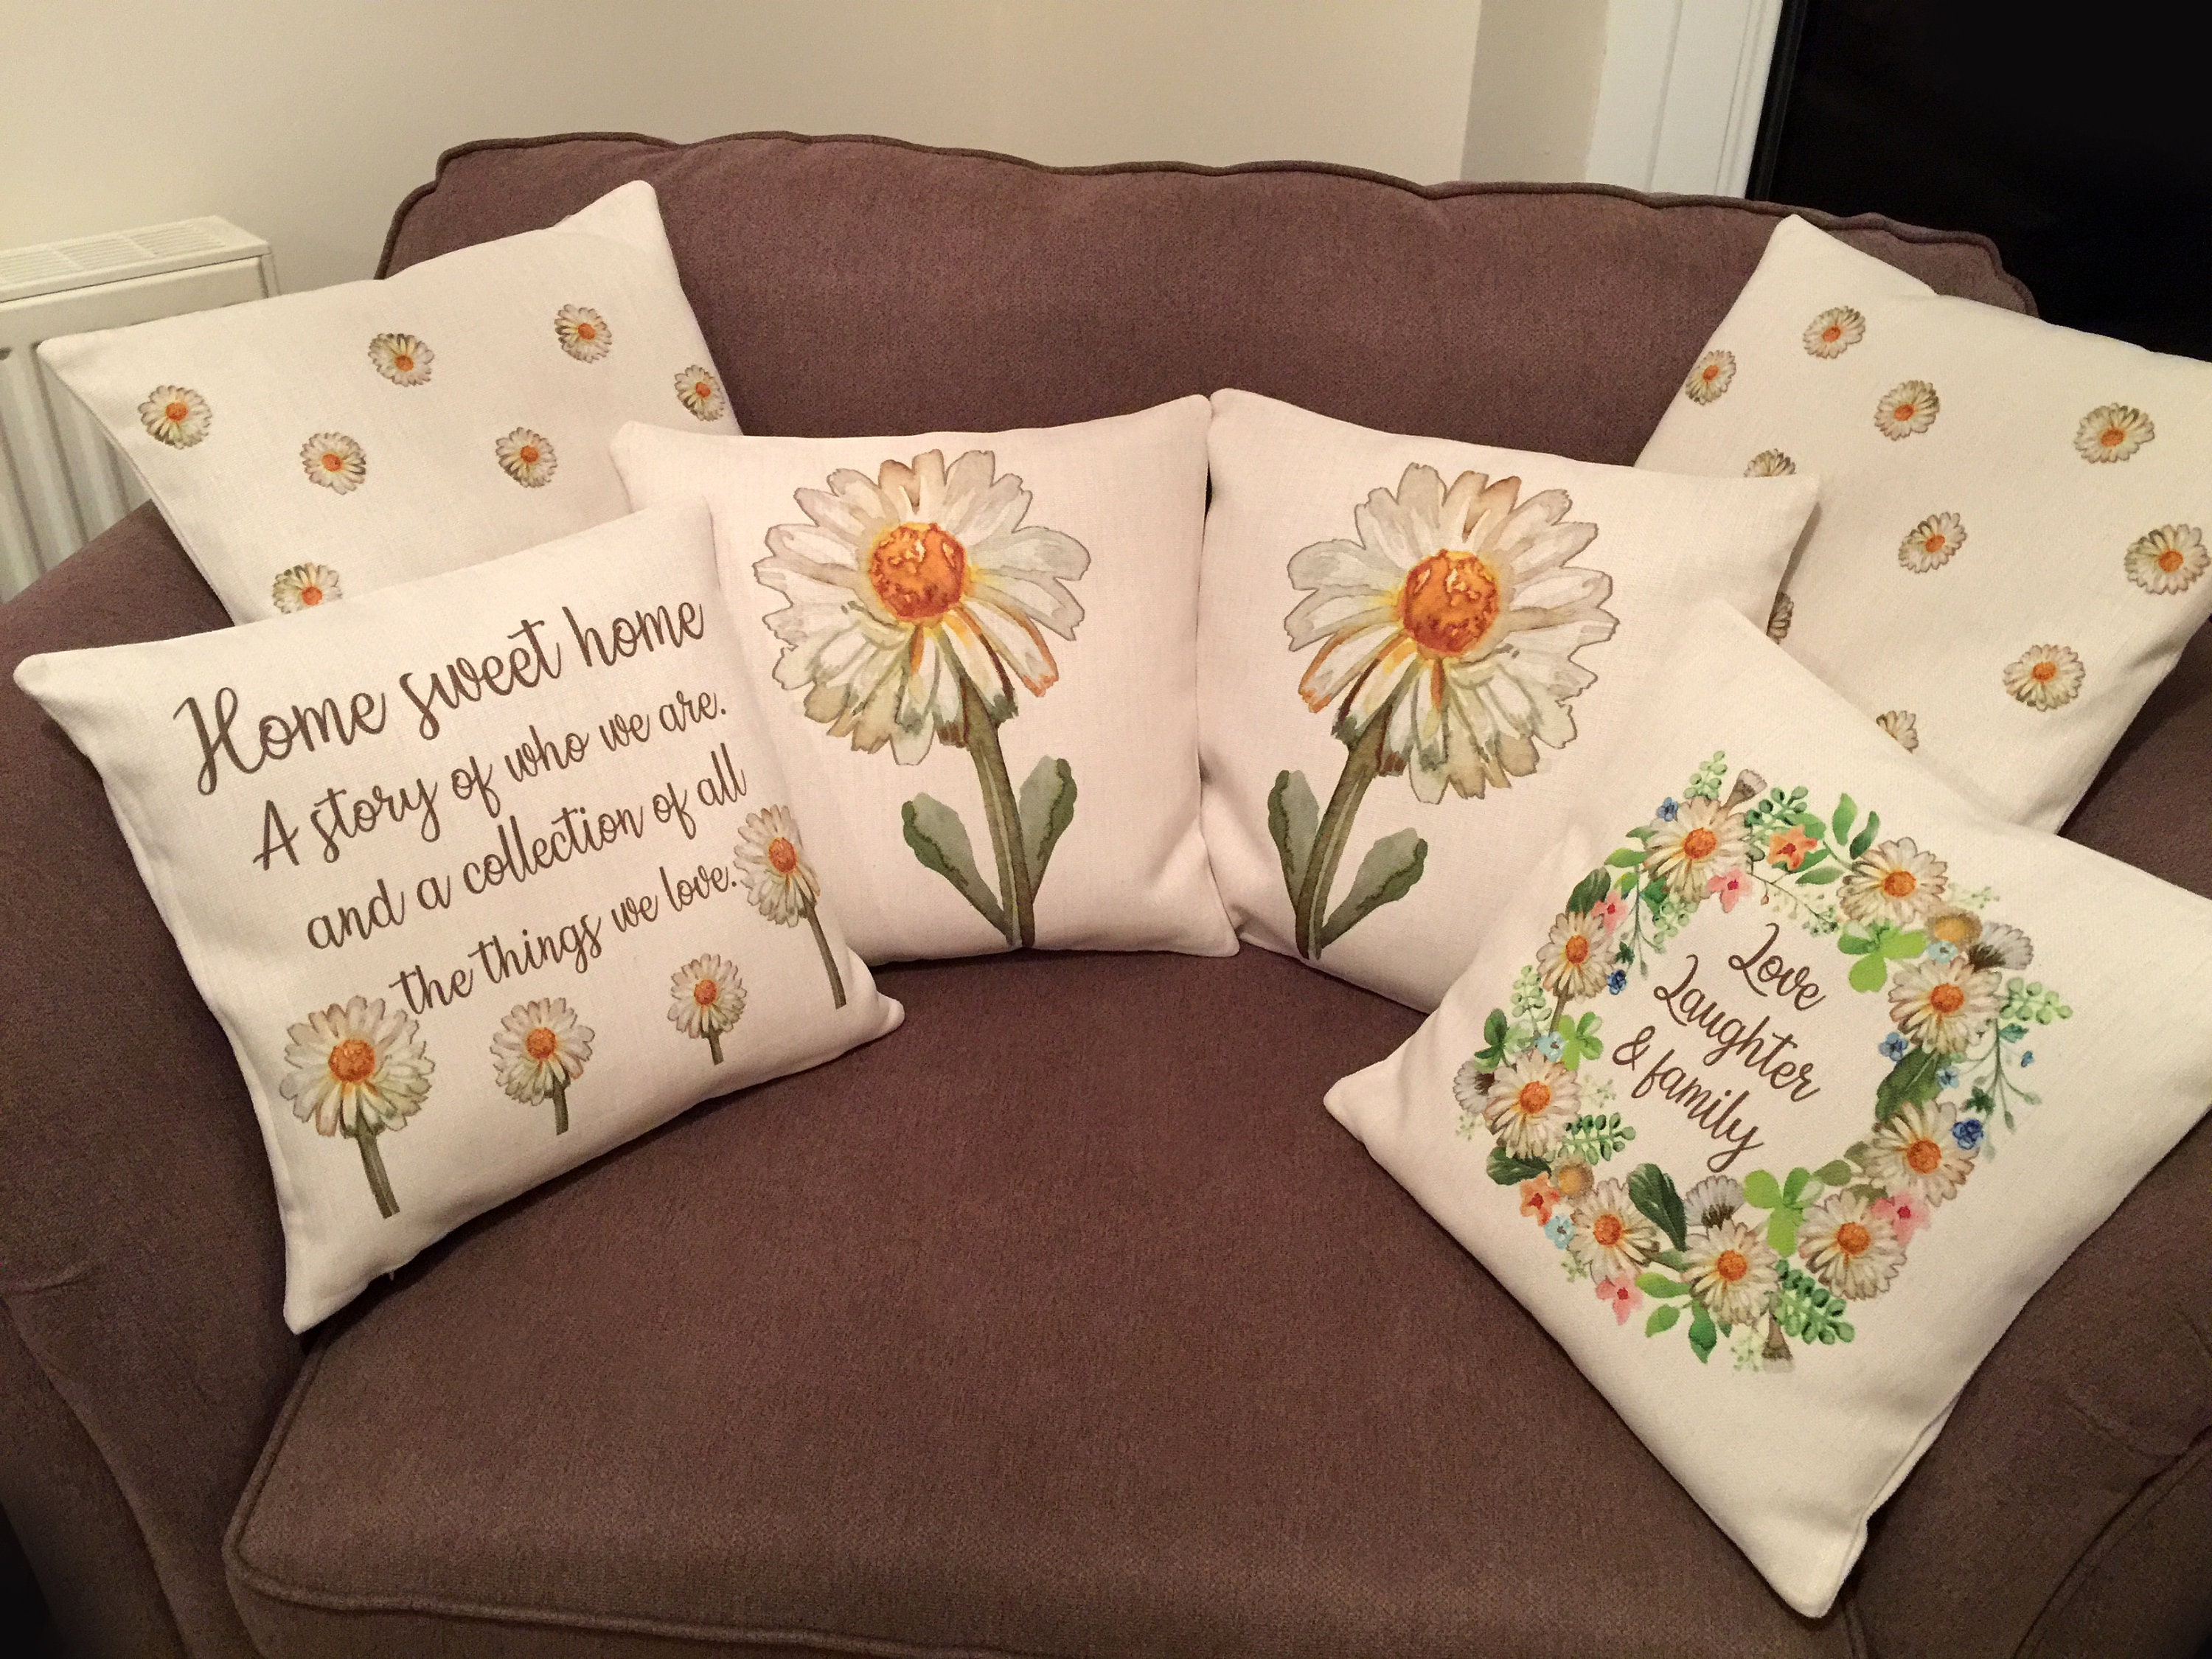 Shabby Chic Living Room Rustic Country Style Home Personalised Cushion Family Farmhouse Decor New Home Gifts Mothers Day Flower Theme Nan